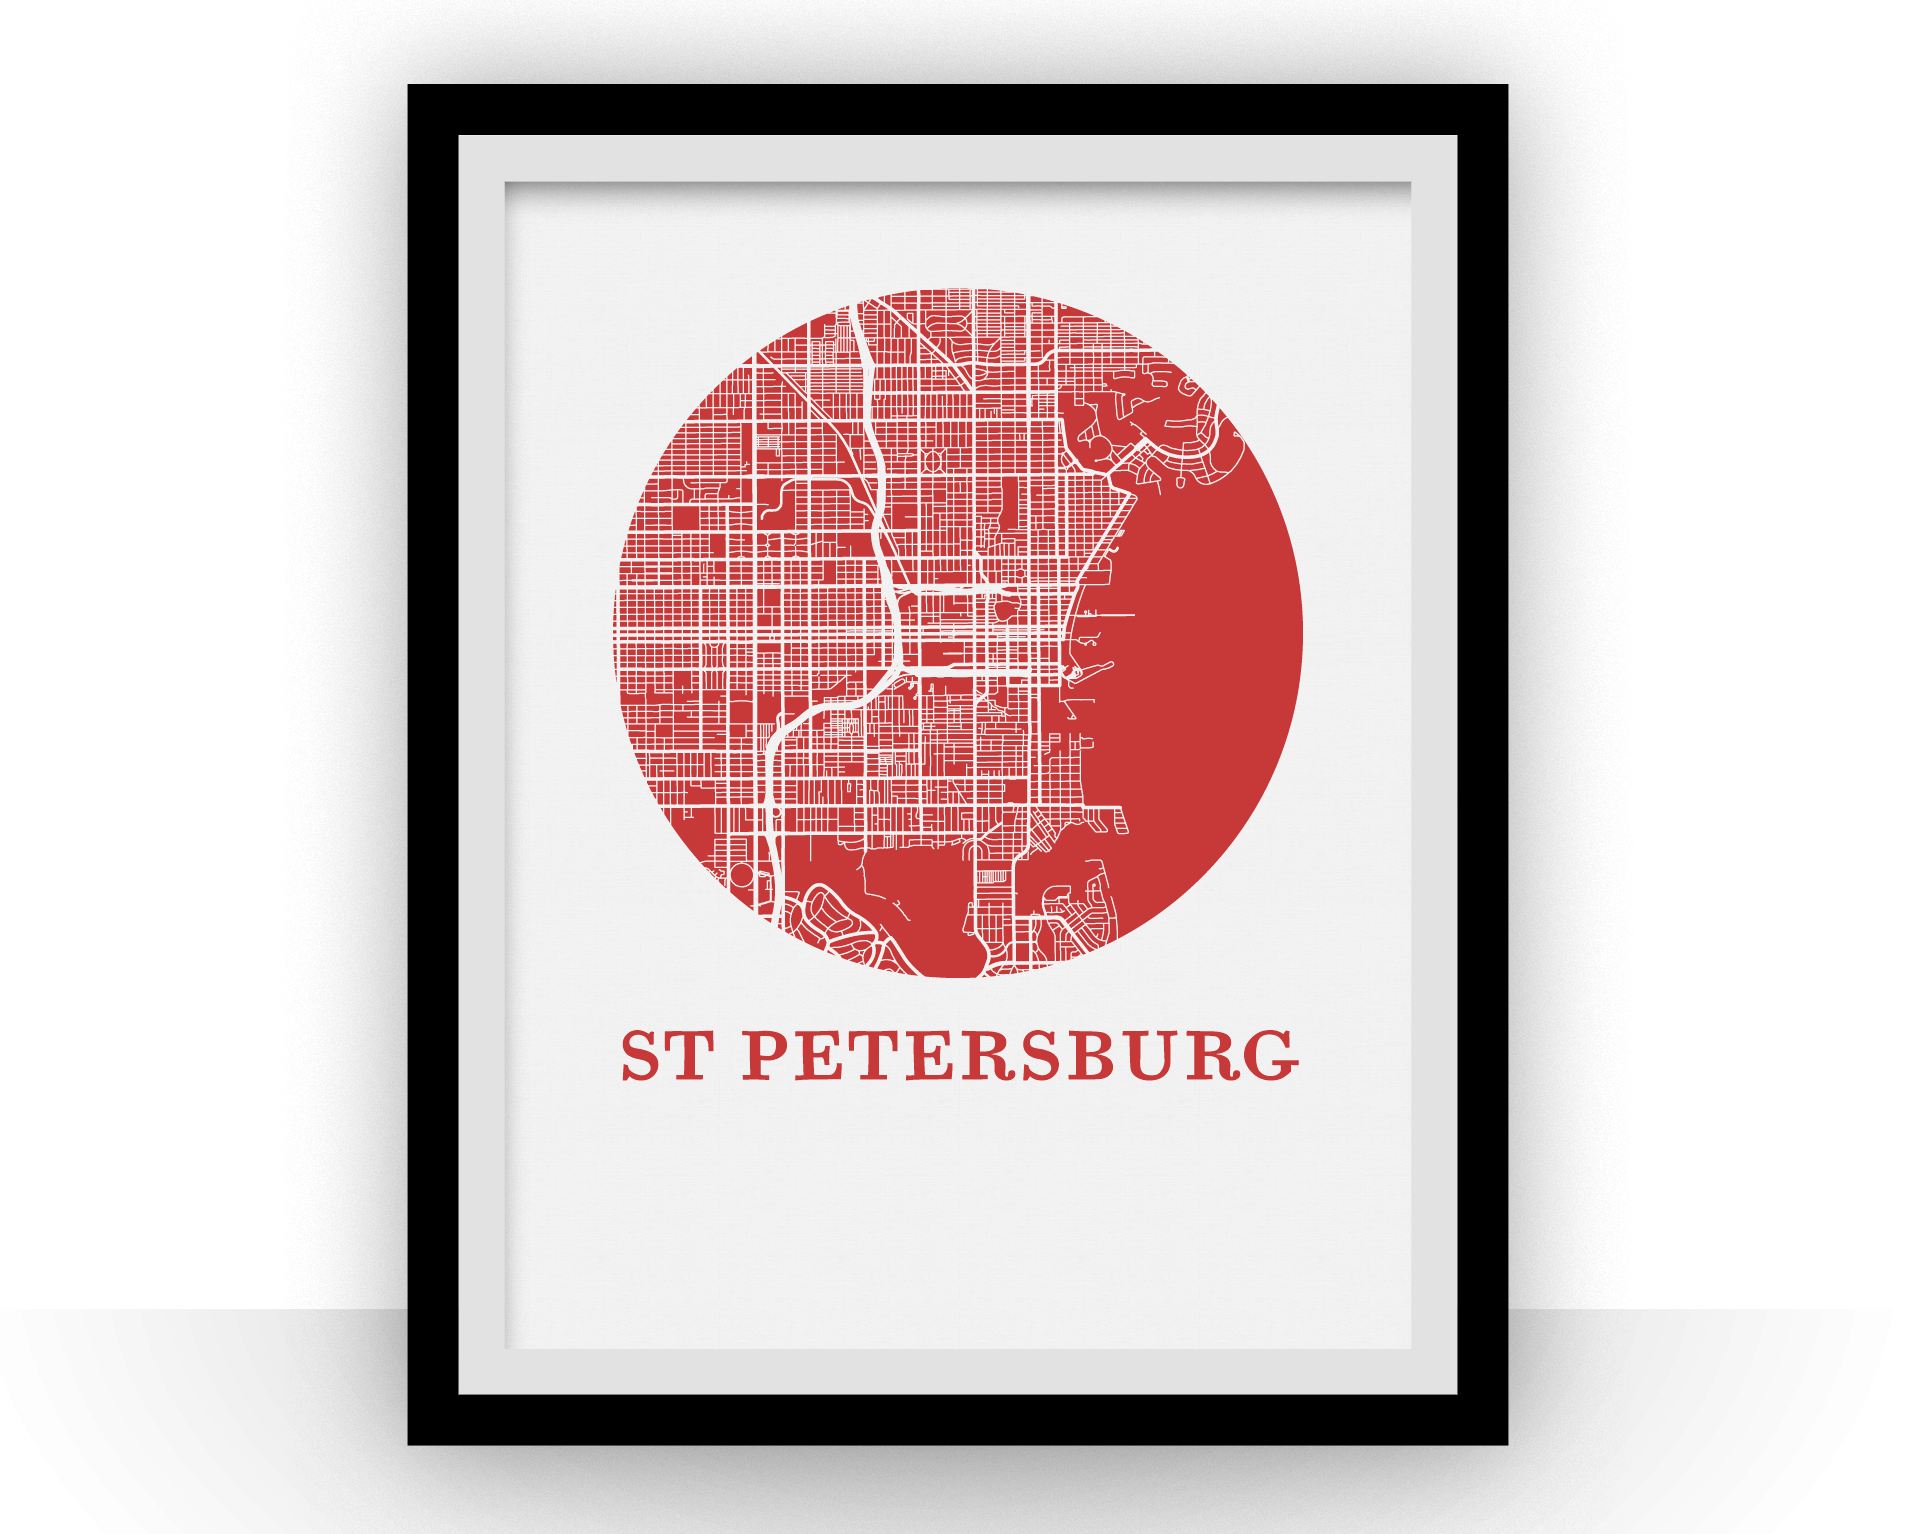 St Petersburg Florida Map.St Petersburg Florida Map Print City Map Poster Ilikemaps